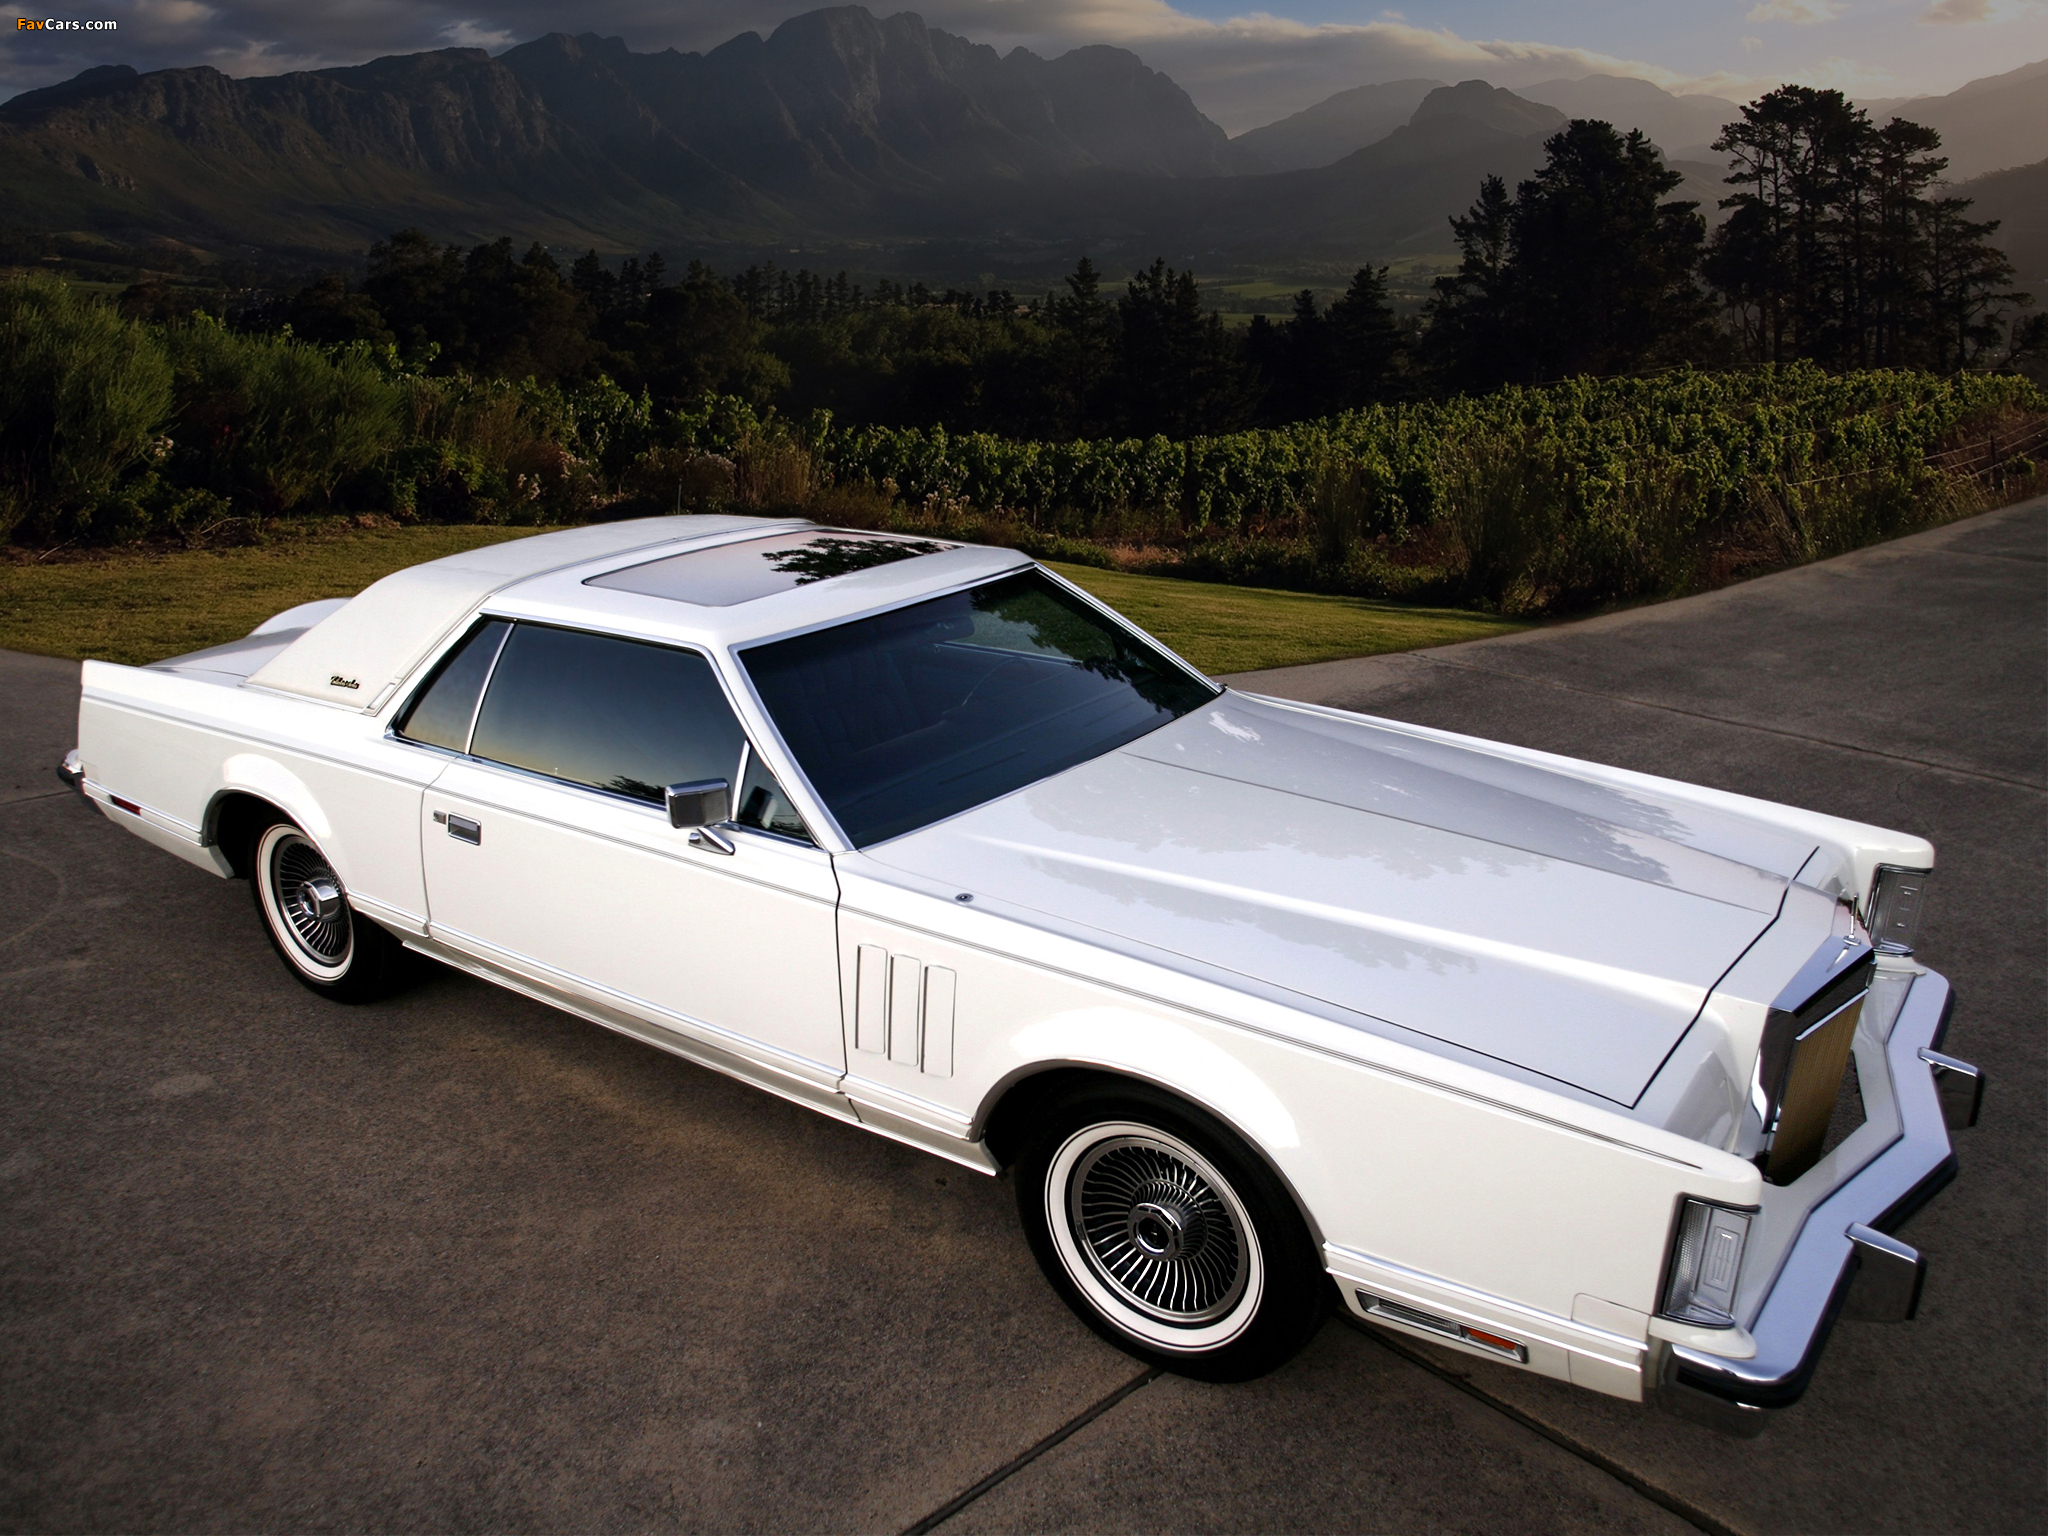 1977 lincoln mark v - information and photos